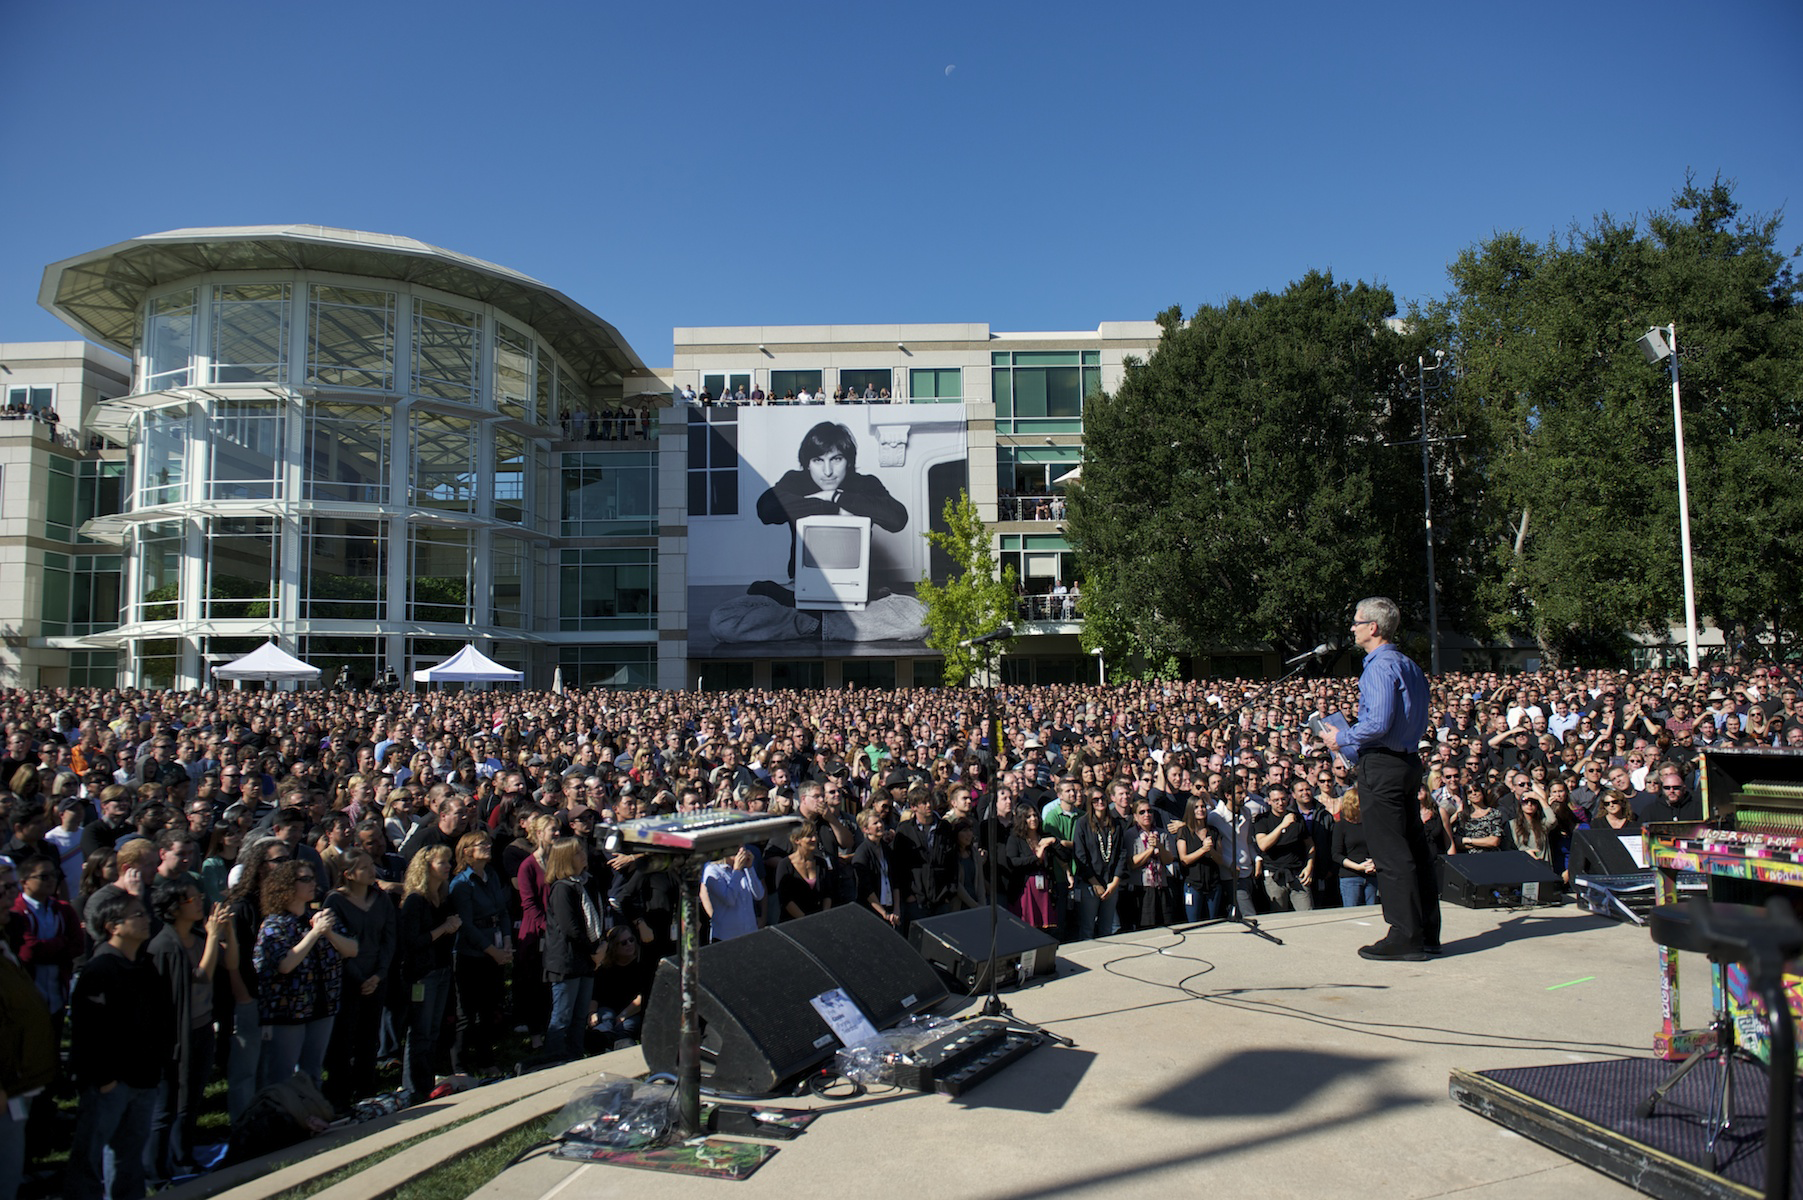 Apple CEO Tim Cook at the celebration of Steve Jobs' life earlier today.